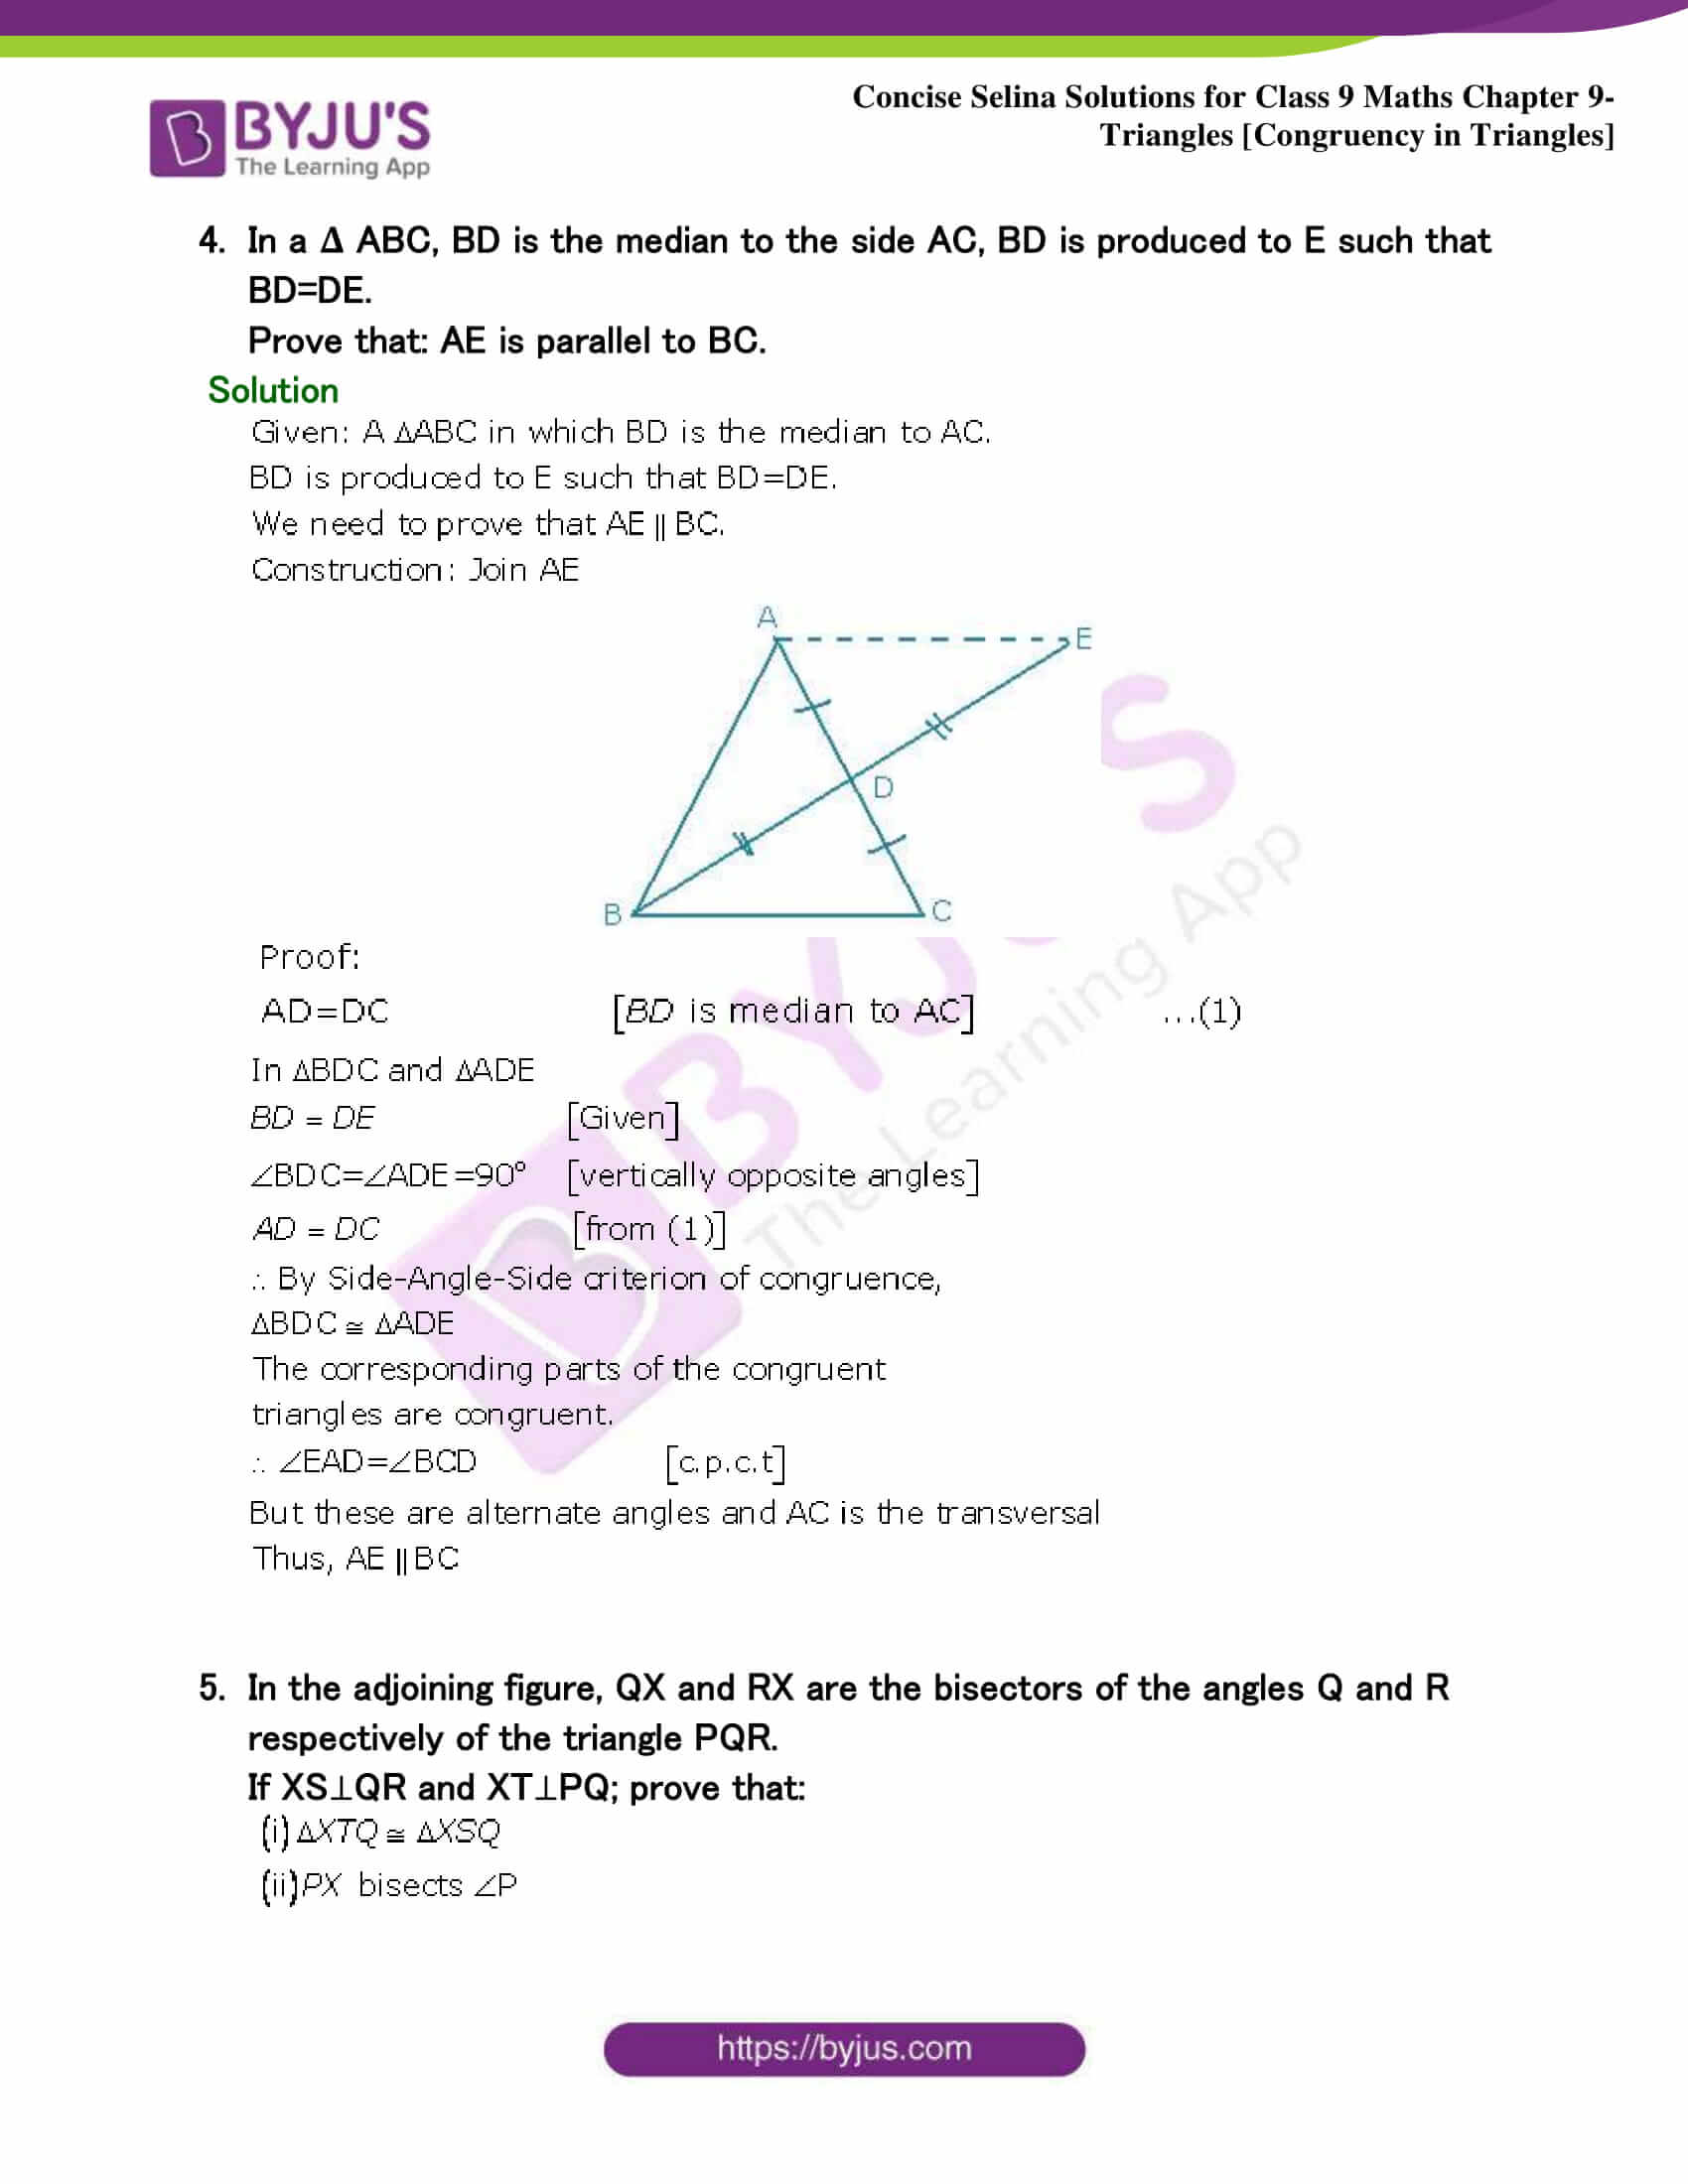 Selina Solutions Class 9 Maths Chapter 9 Triangles part 27